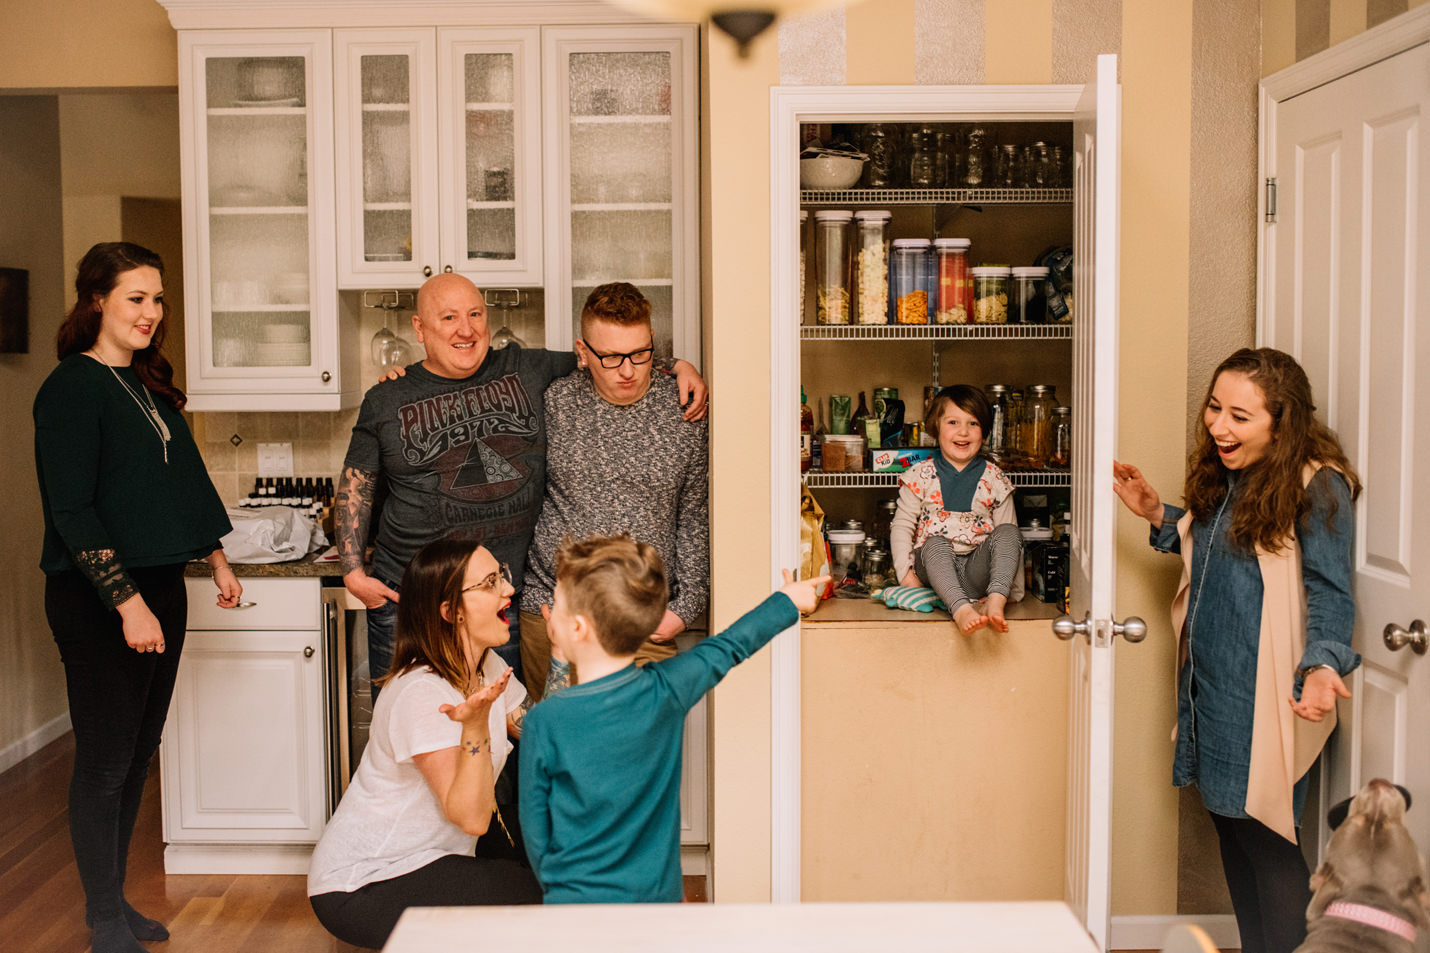 seattle-family-photographer-squillaces-2016_0614.JPG